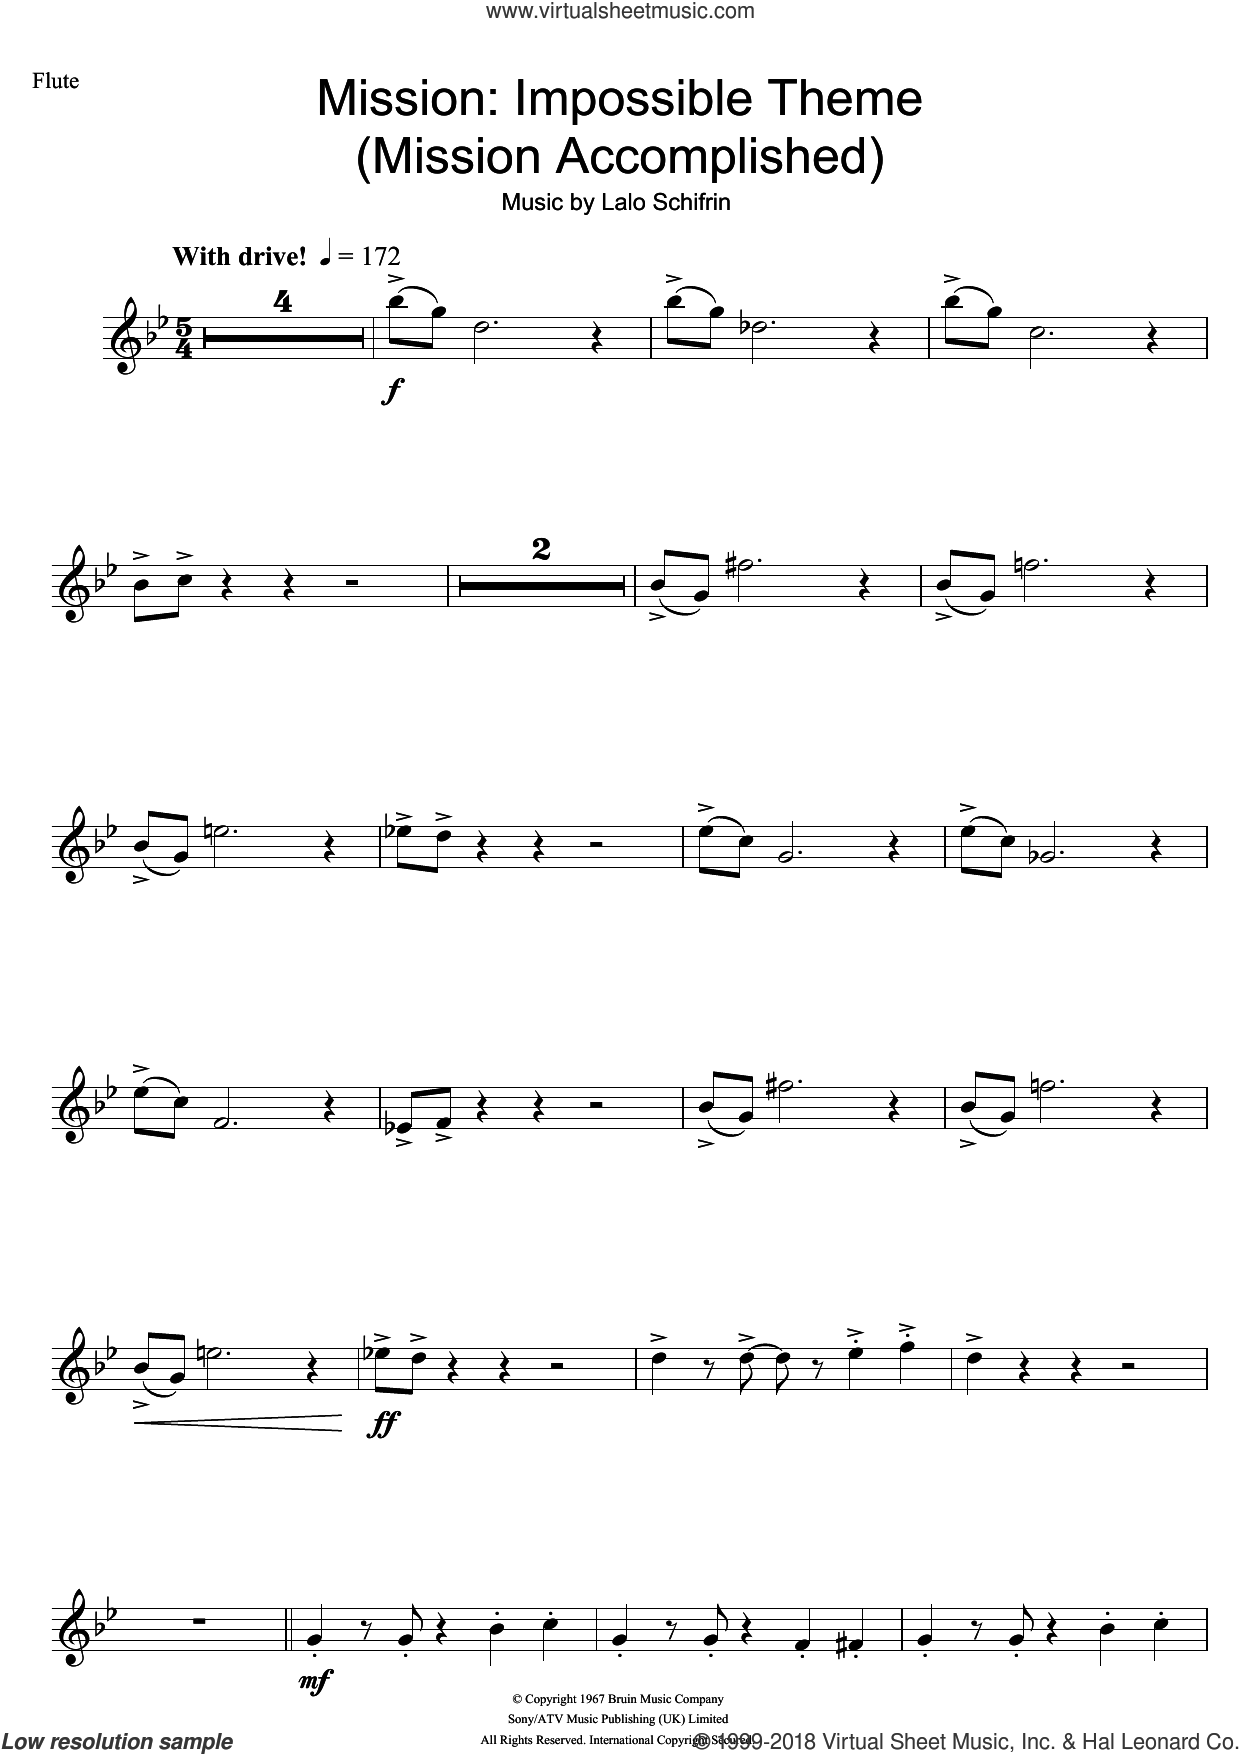 Mission: Impossible Theme (Mission Accomplished) sheet music for flute solo by Lalo Schifrin. Score Image Preview.